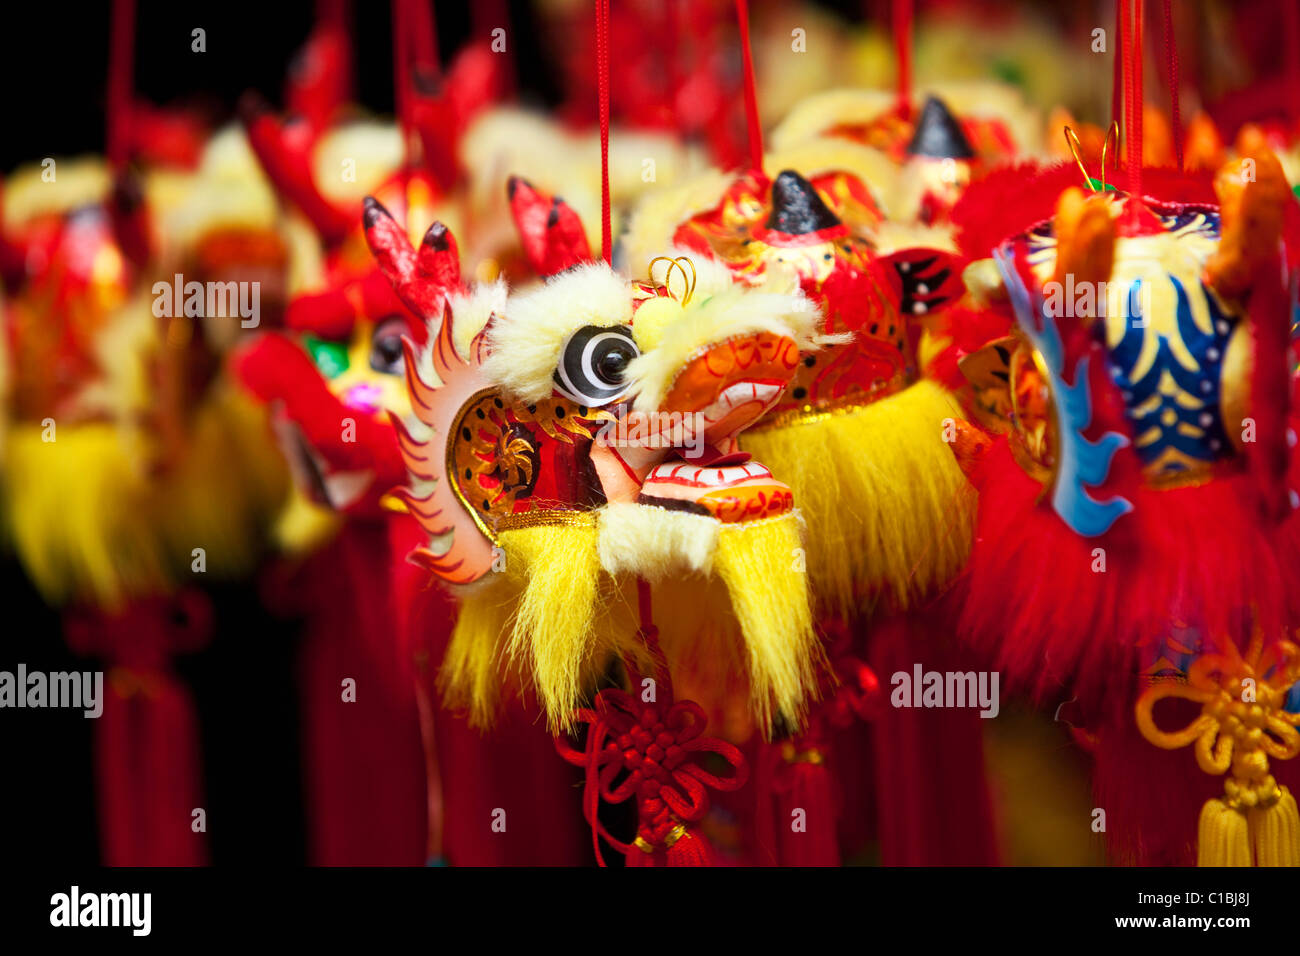 Chinese New Year decorations for sale at the Temple Street night markets.  Chinatown, Singapore - Stock Image